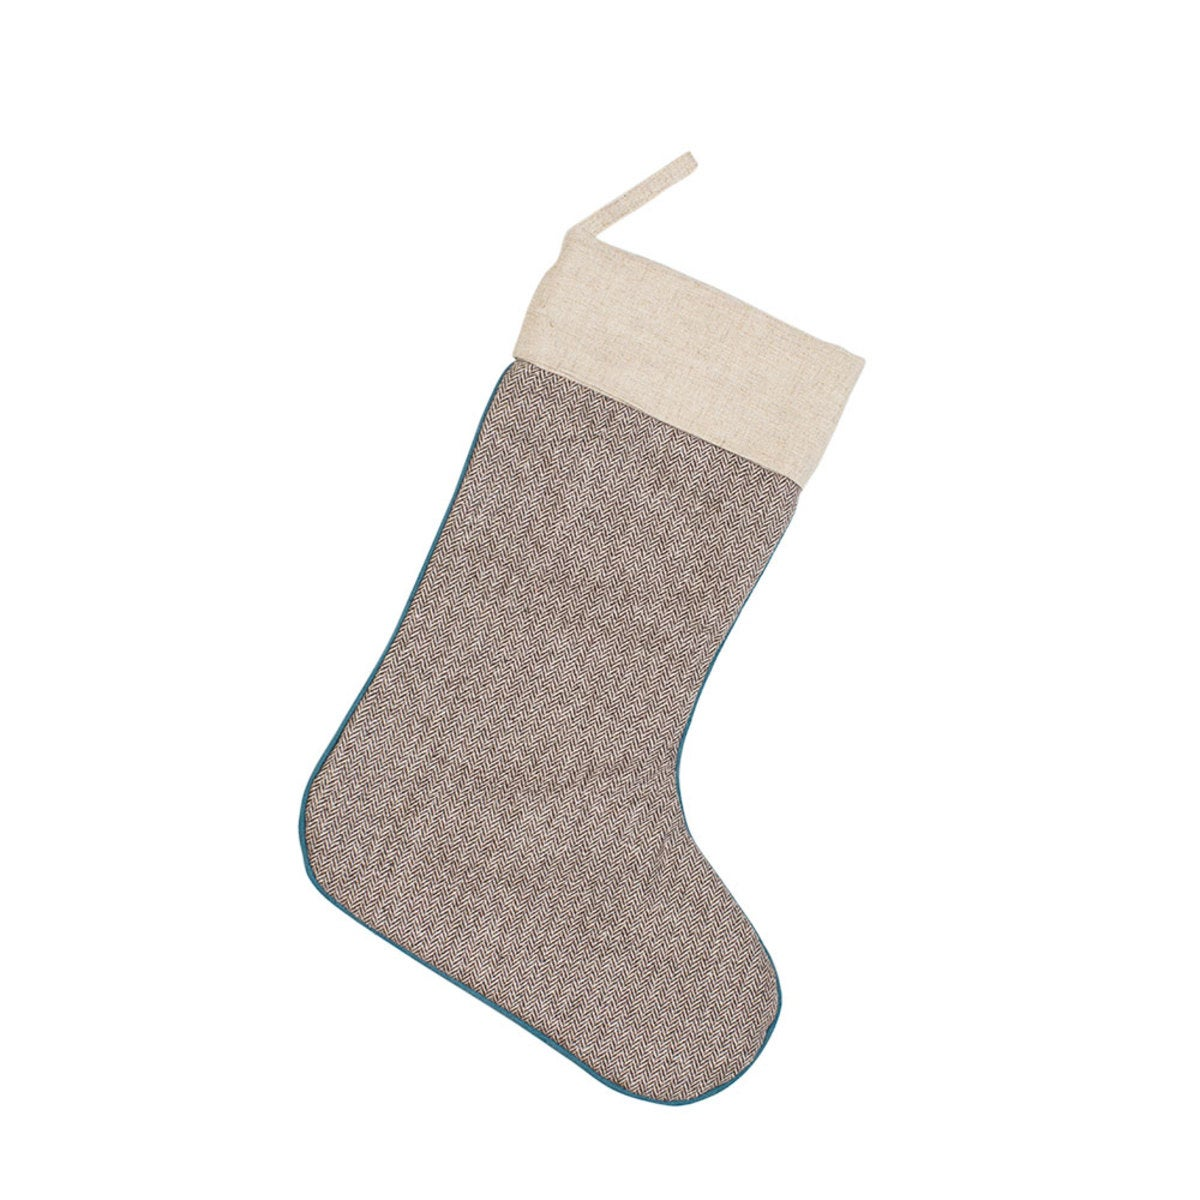 Herringbone Christmas Stocking - Brown